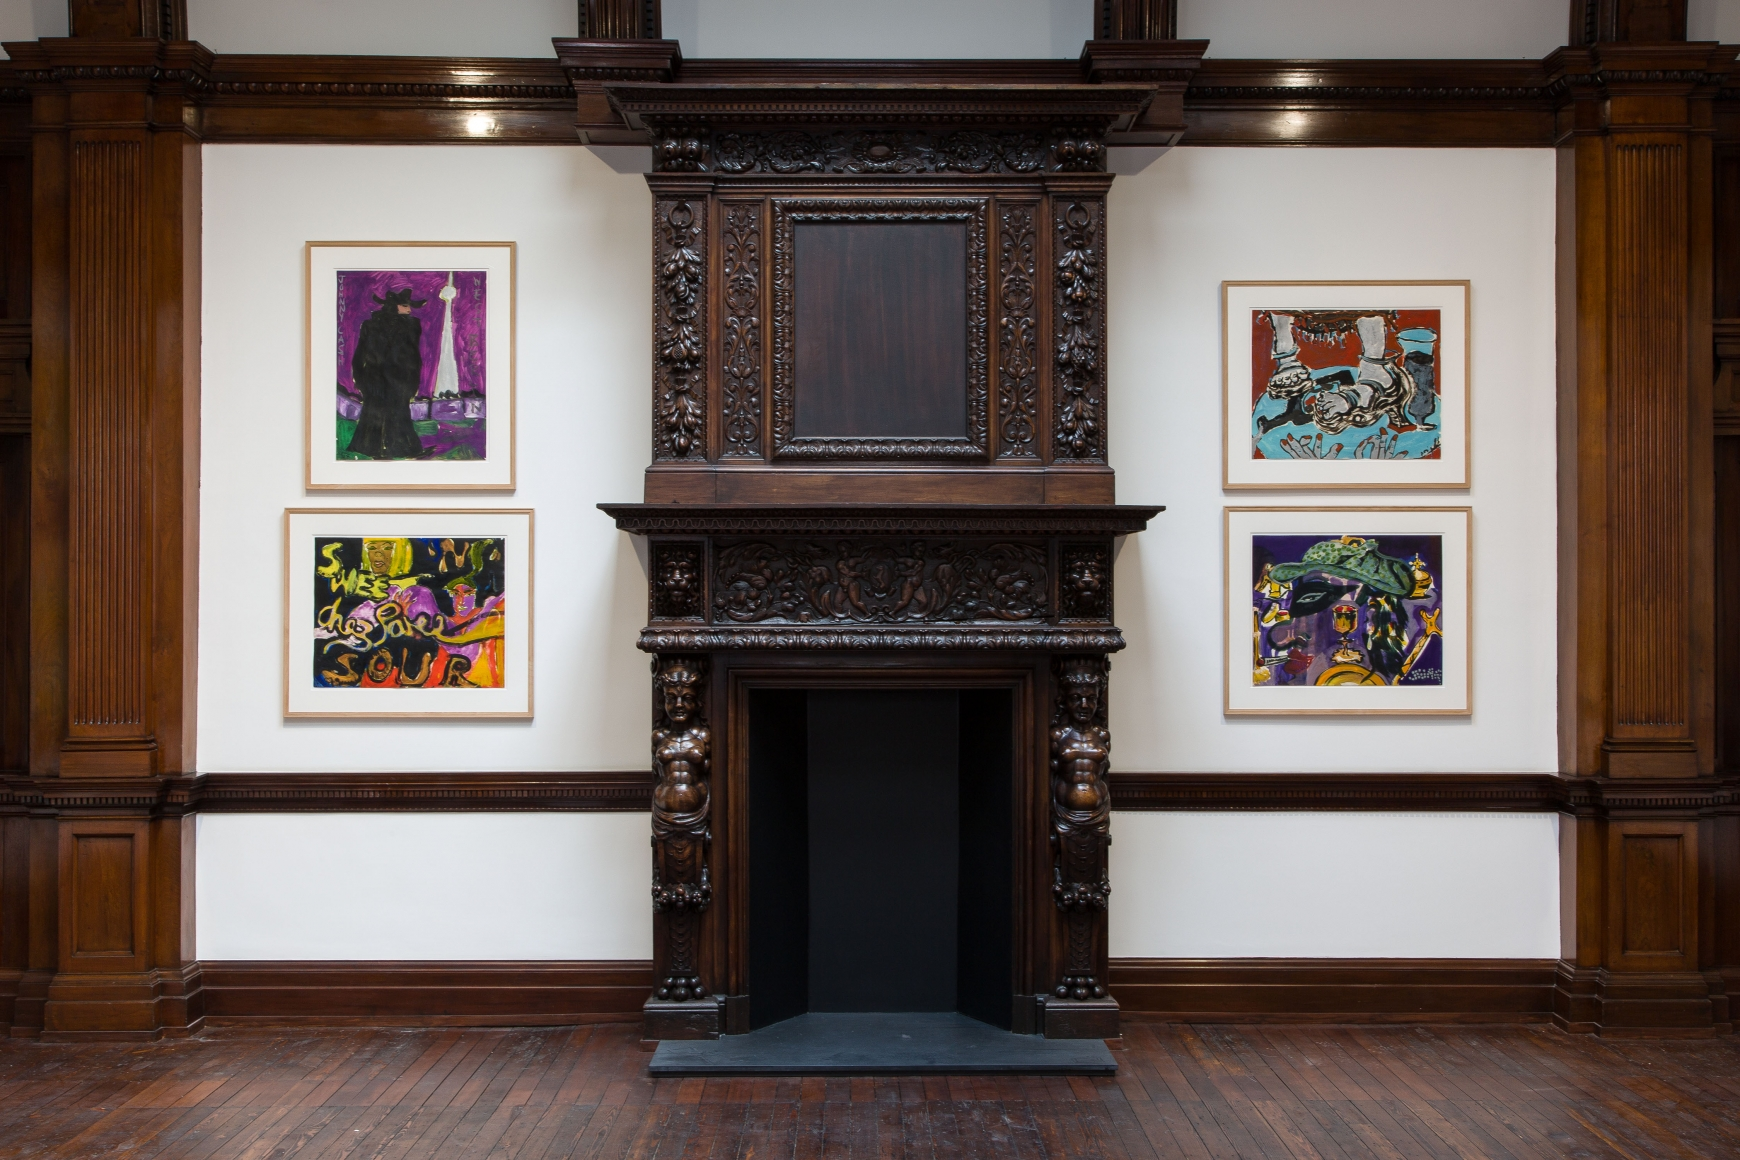 Peter Doig, Early Works, London, 2014, Installation Image 12